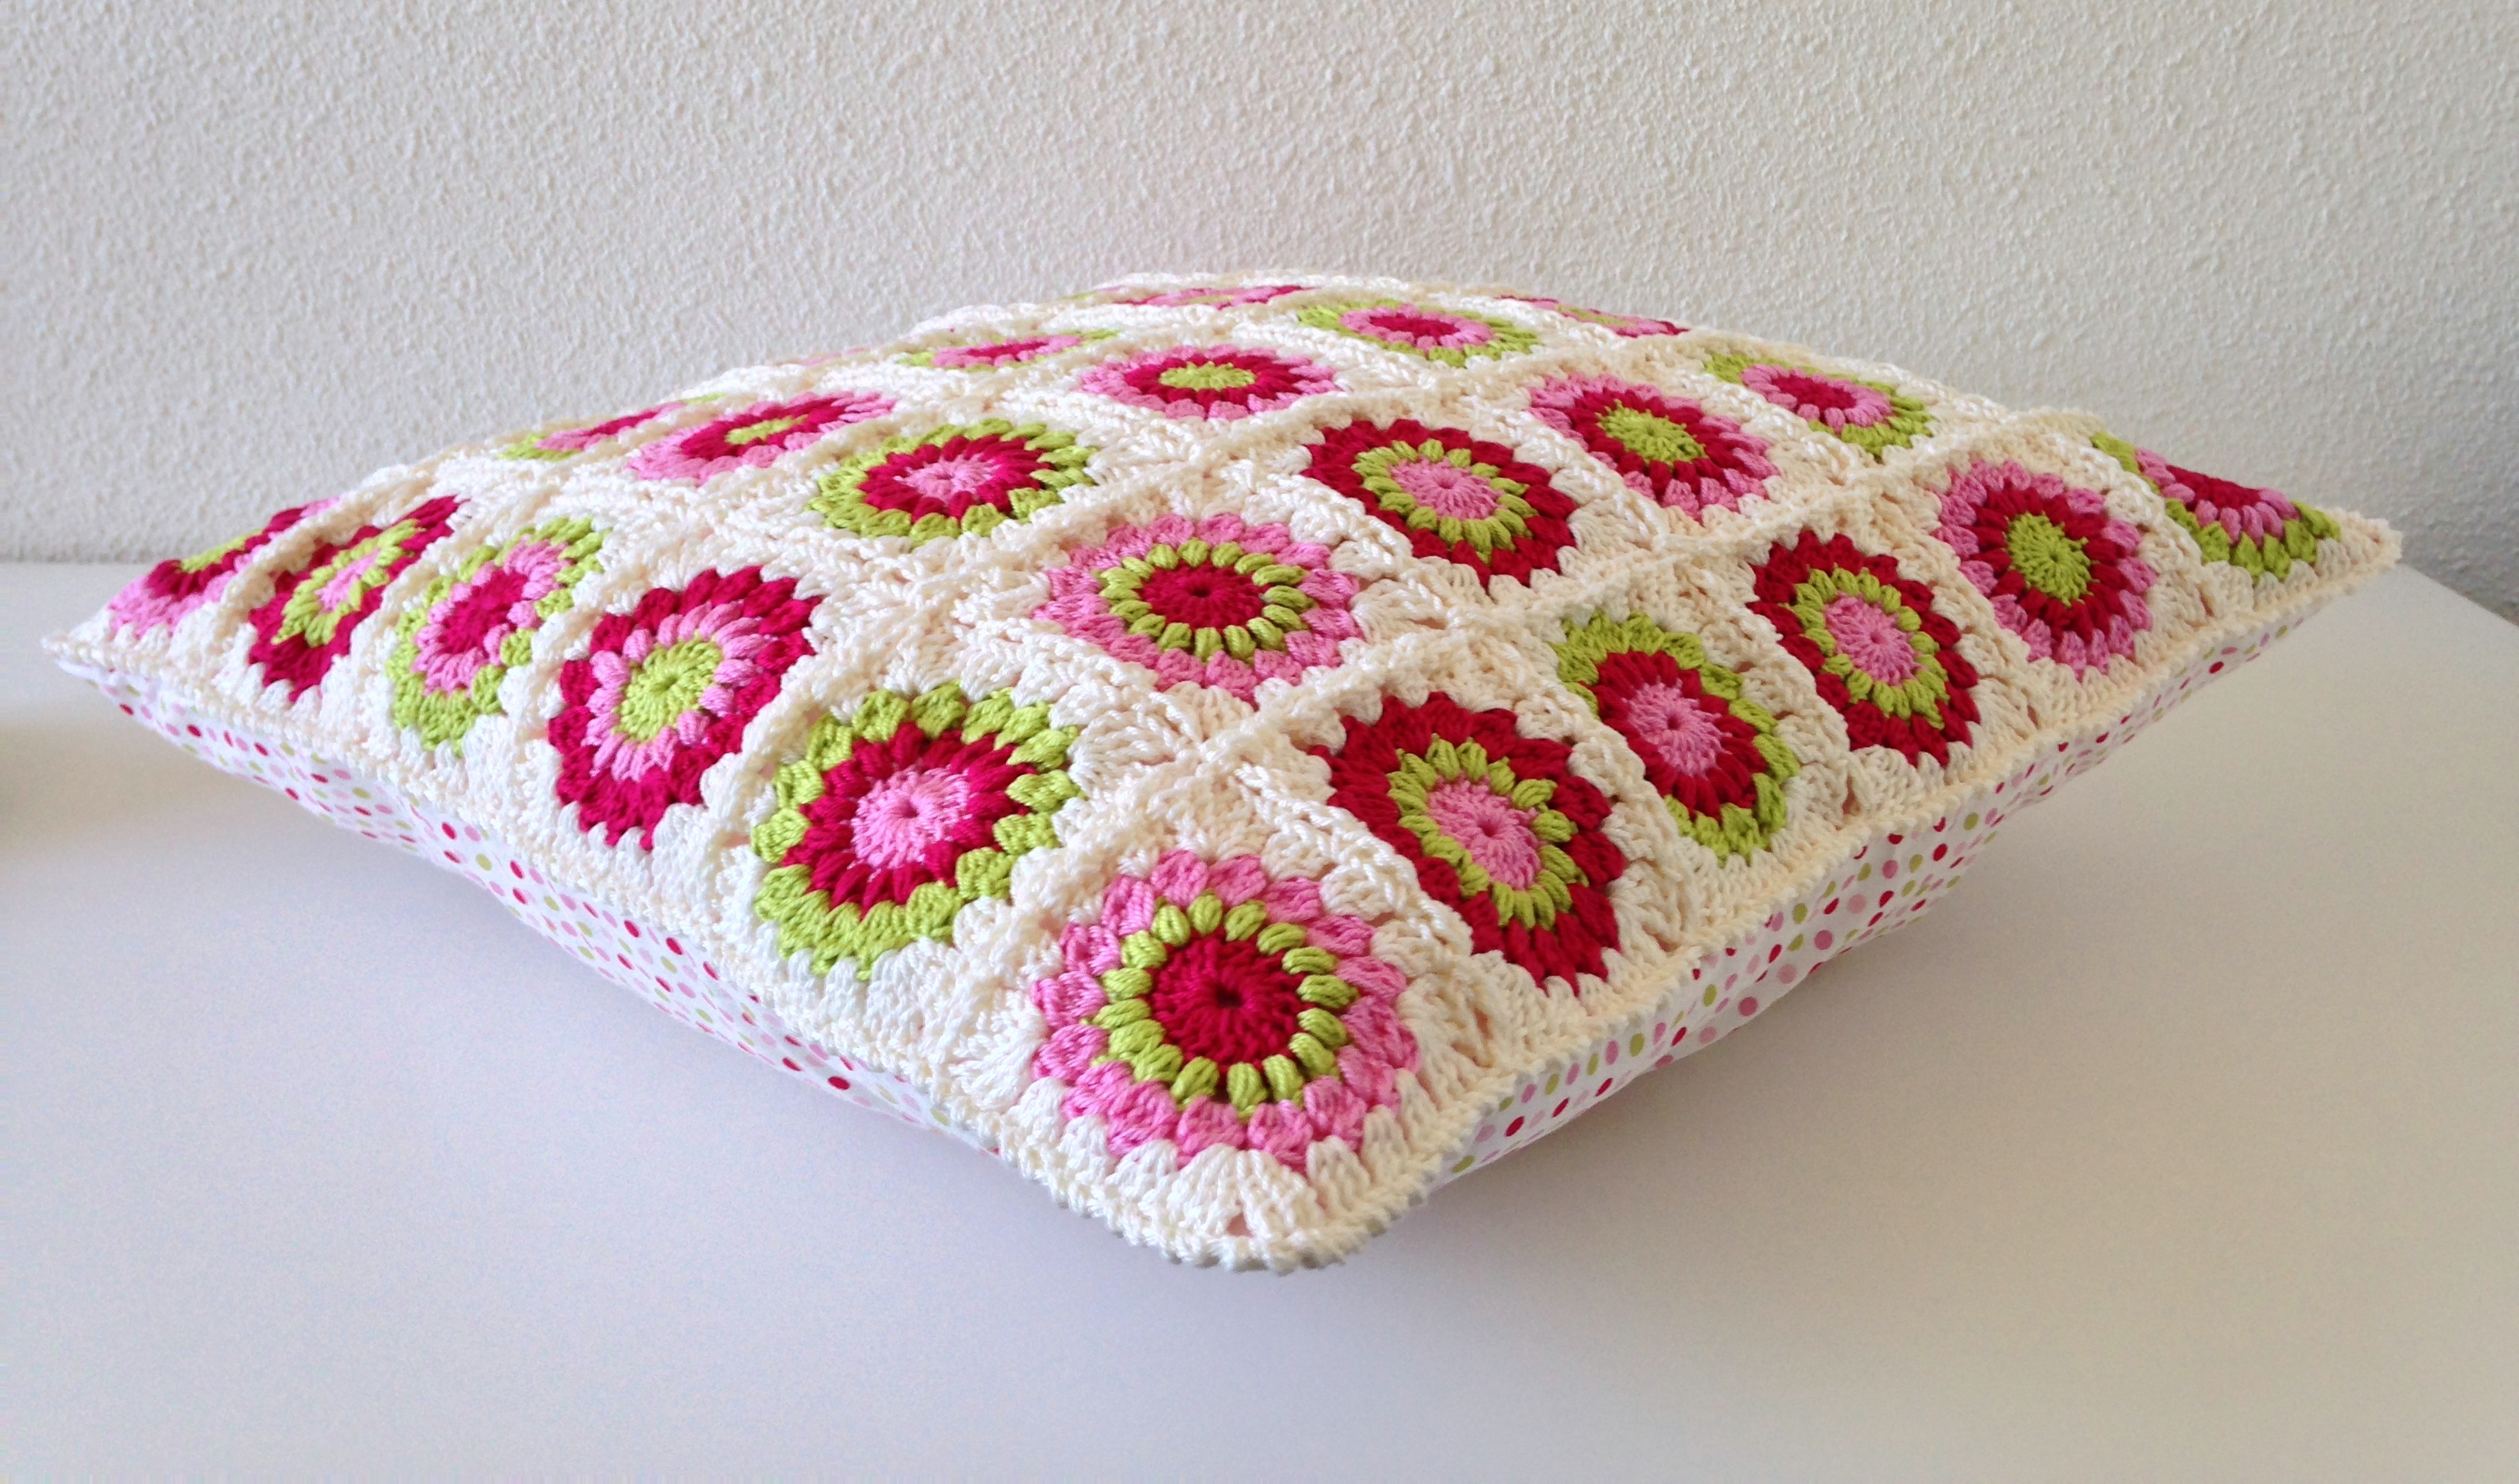 maRRose - CCC: sunburst granny square cushion